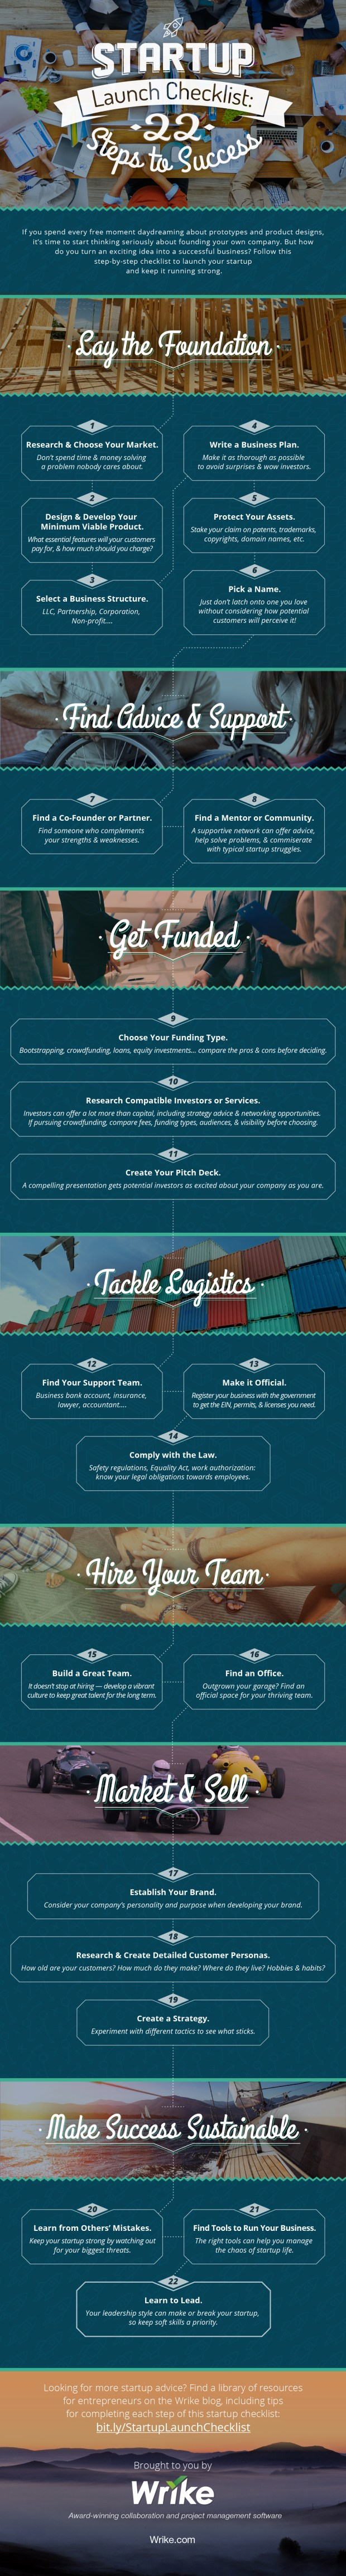 Startup Launch Checklist: 22 Steps to Success (#Infographic)